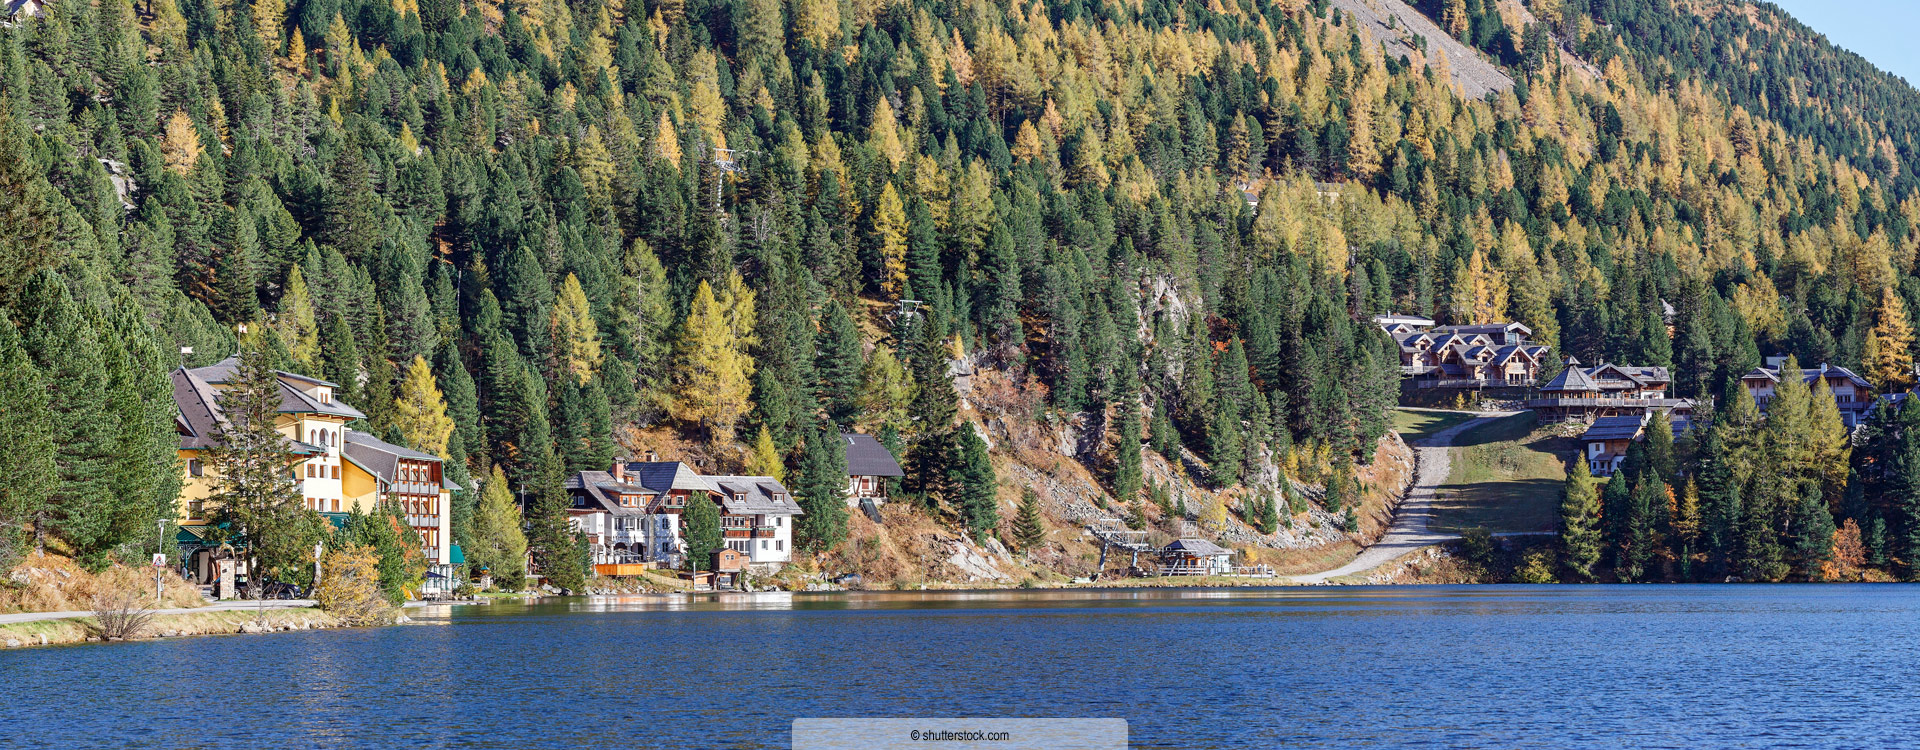 Seehotels Turracher See